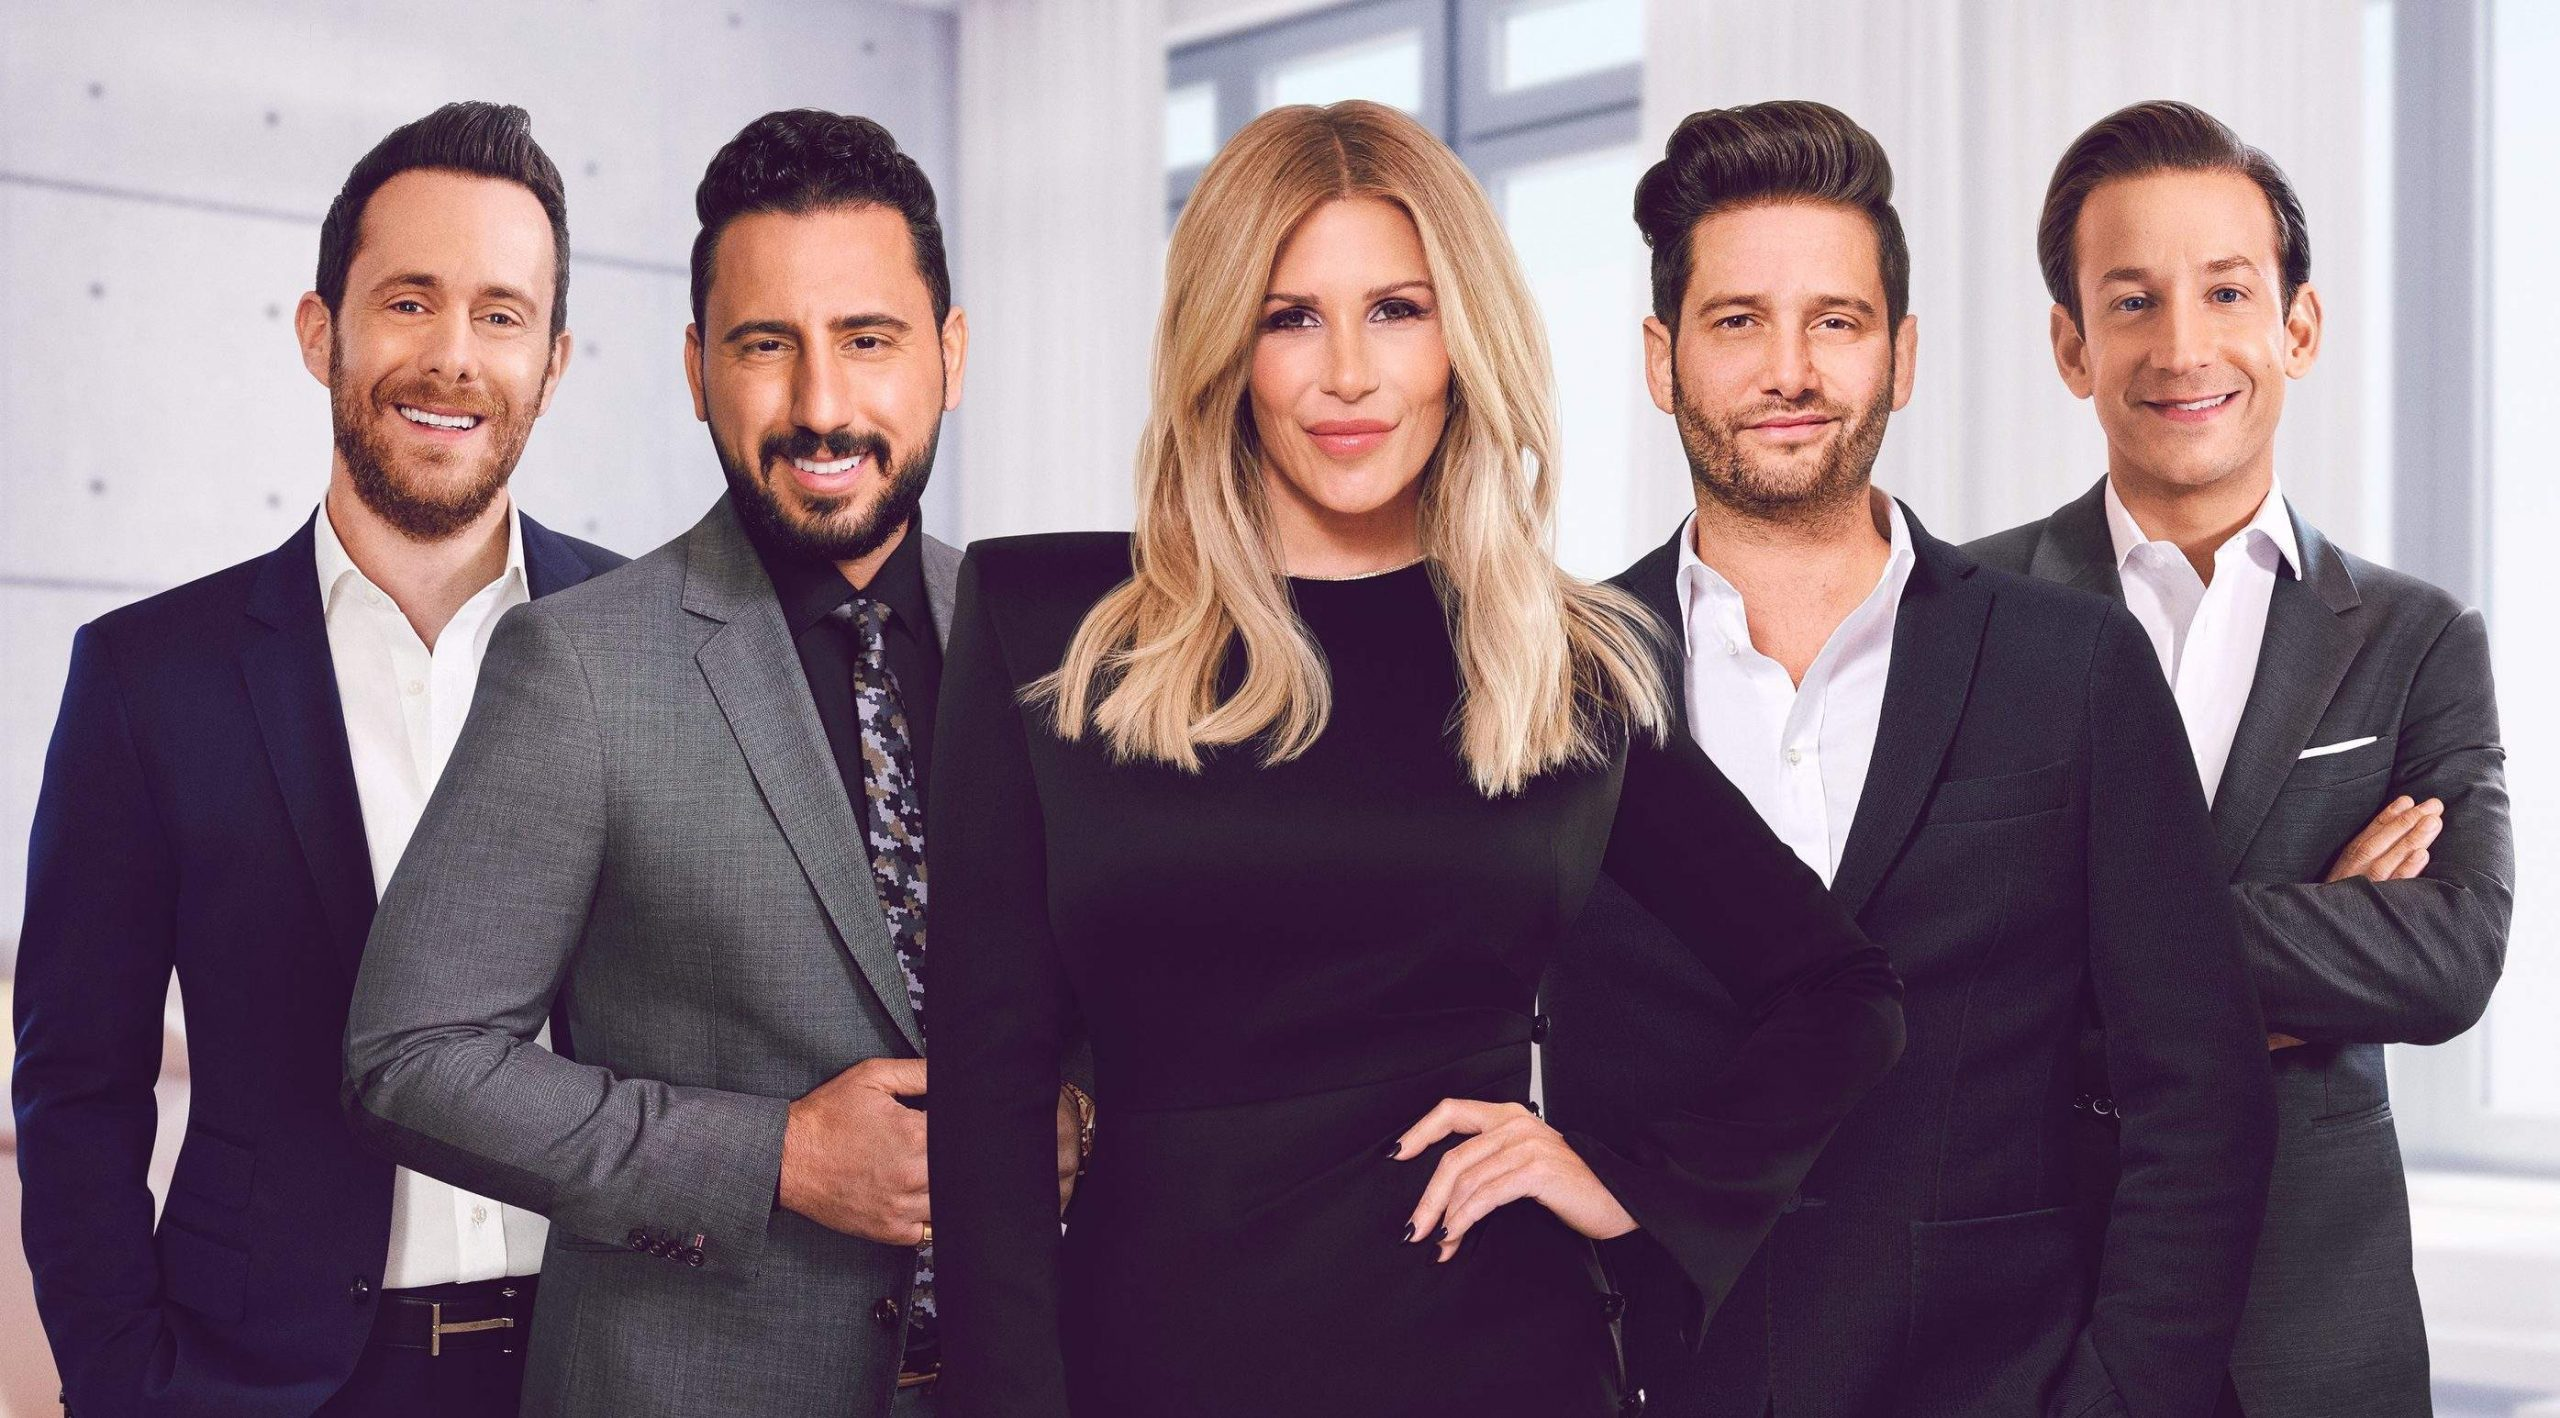 Josh Flagg and other realtors